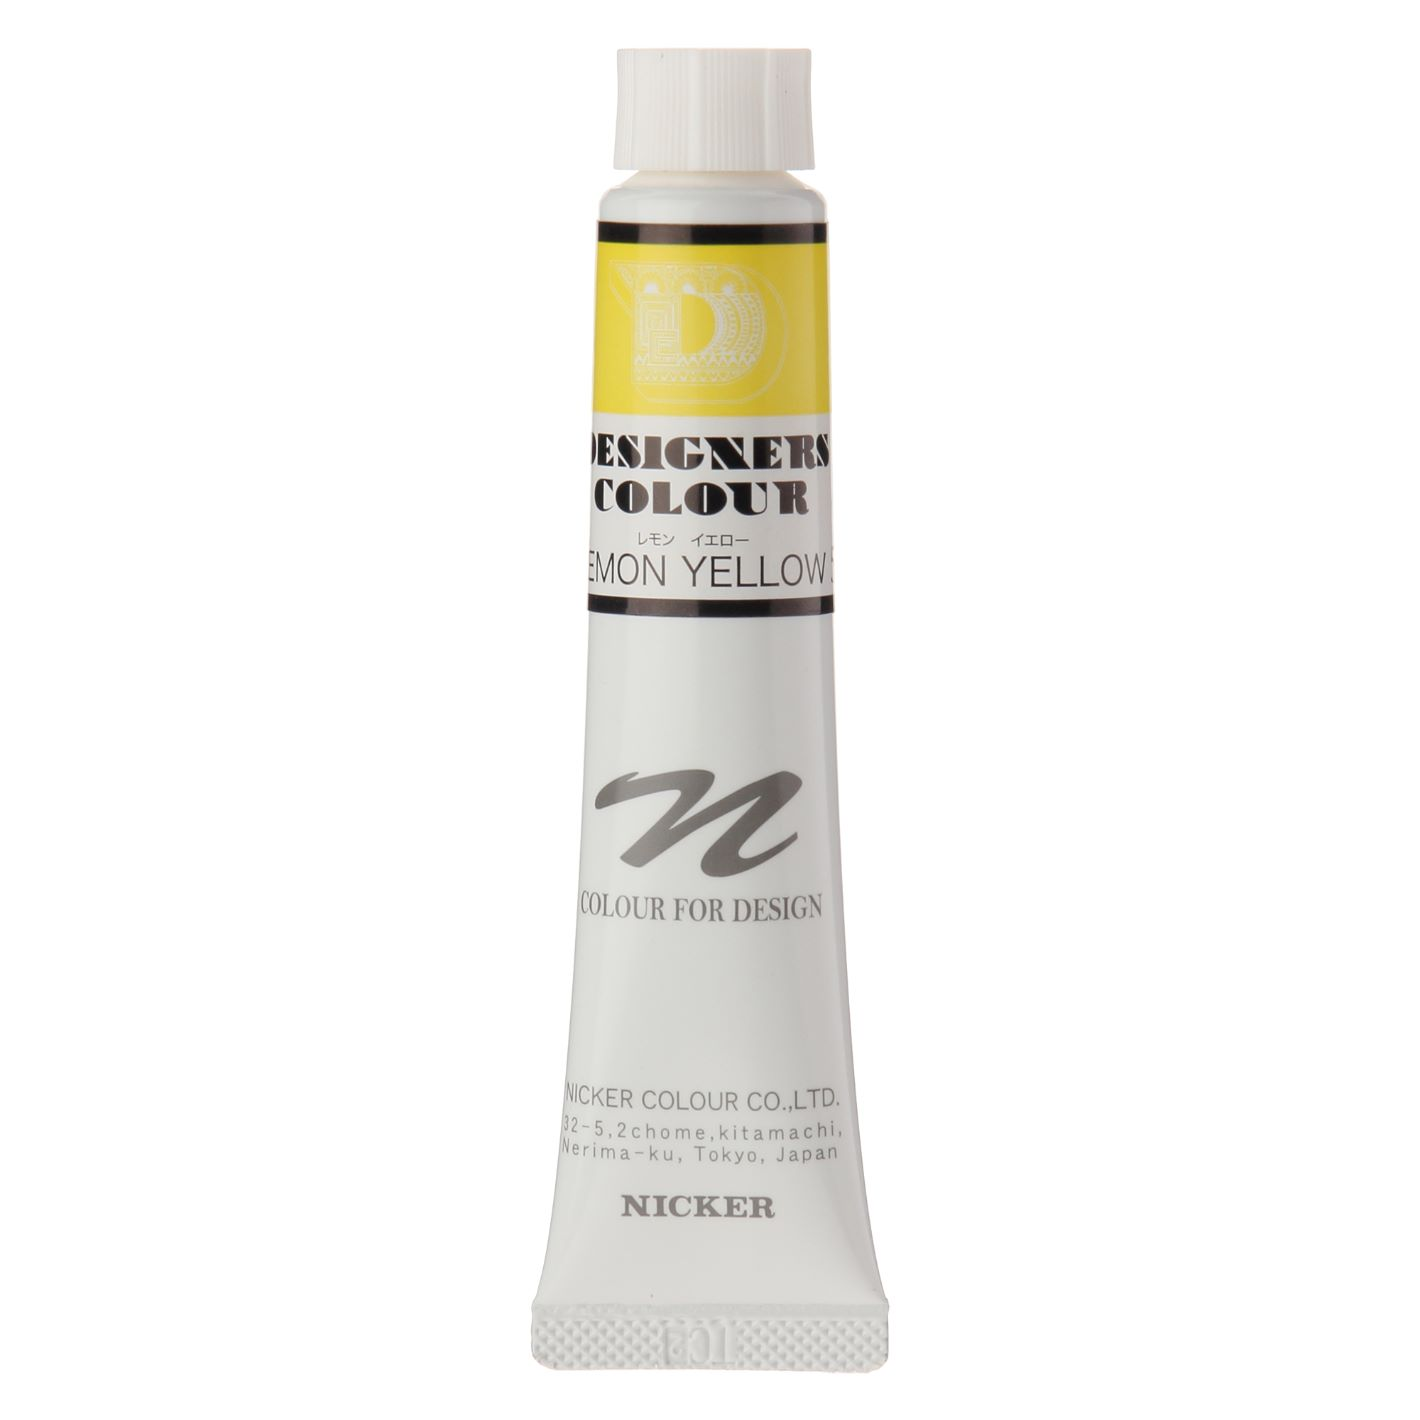 DESIGNERS COLOUR 20ml 501 LEMON YELLOW